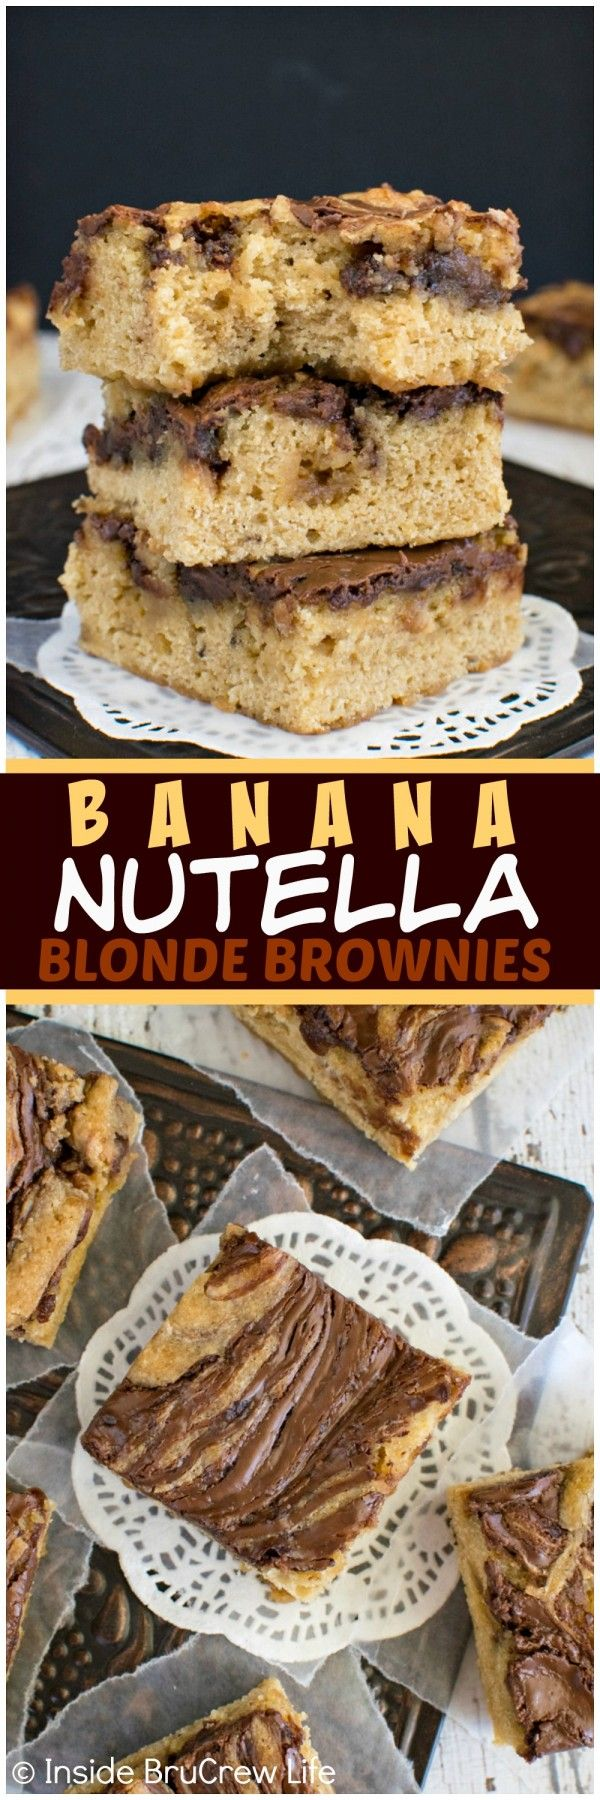 Banana Nutella Blonde Brownies - swirls of chocolate will make these soft bars your new favorite way to use up bananas! Awesome dessert recipe!